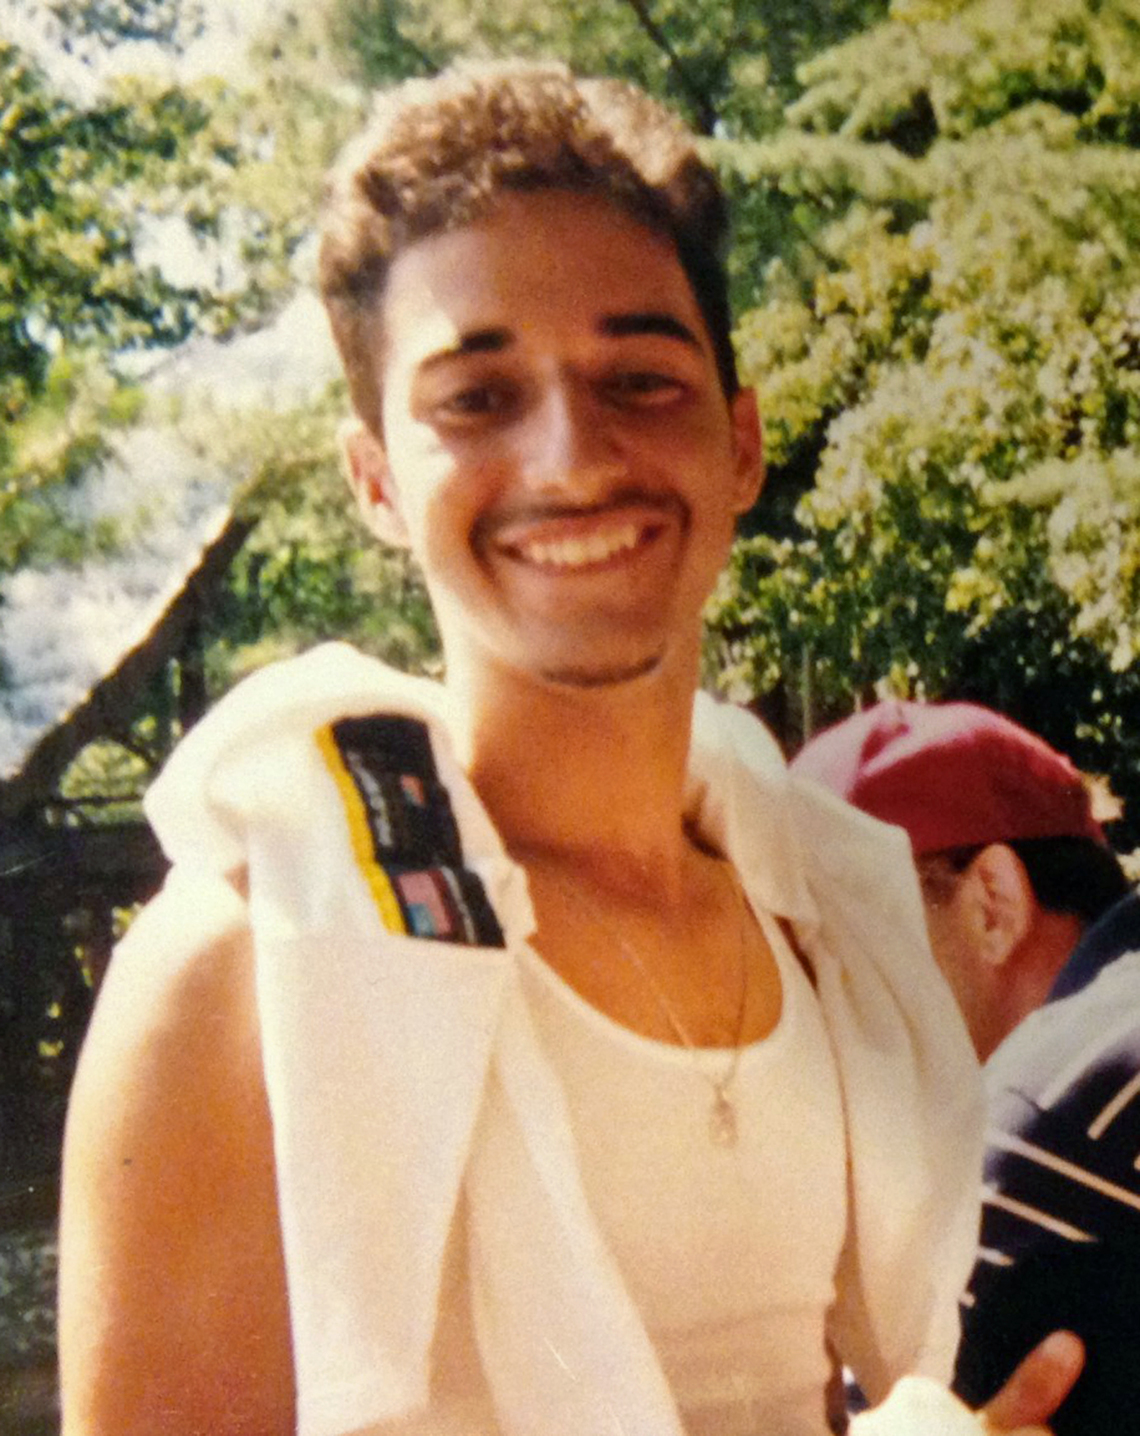 Adnan Syed, serving a life sentence in Maryland for the murder of his ex-girlfriend.